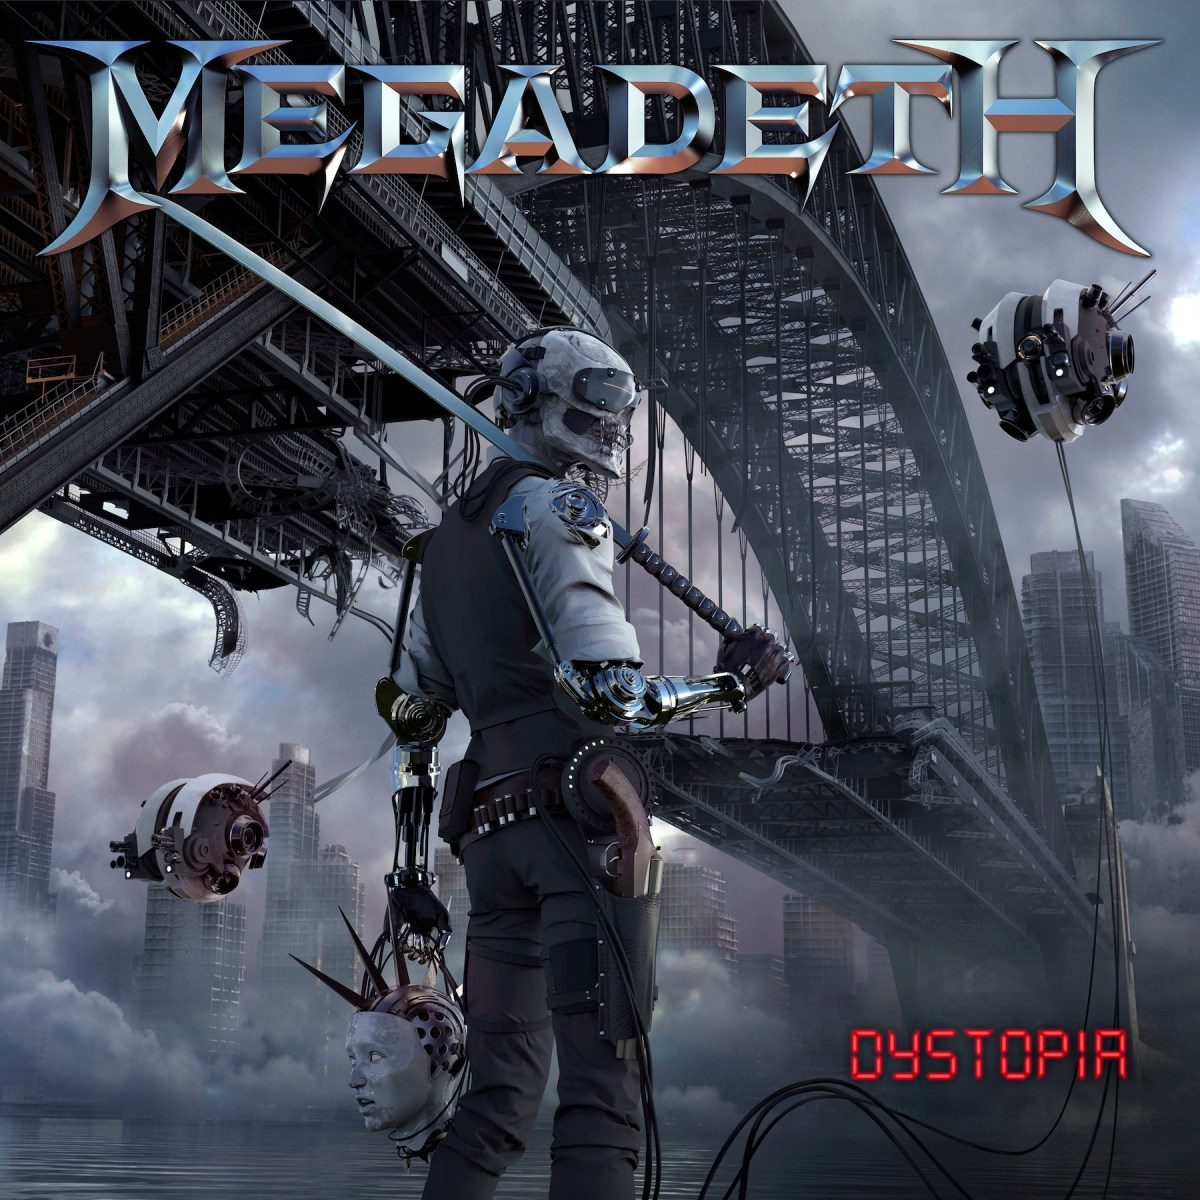 Album review: Megadeth - Dystopia